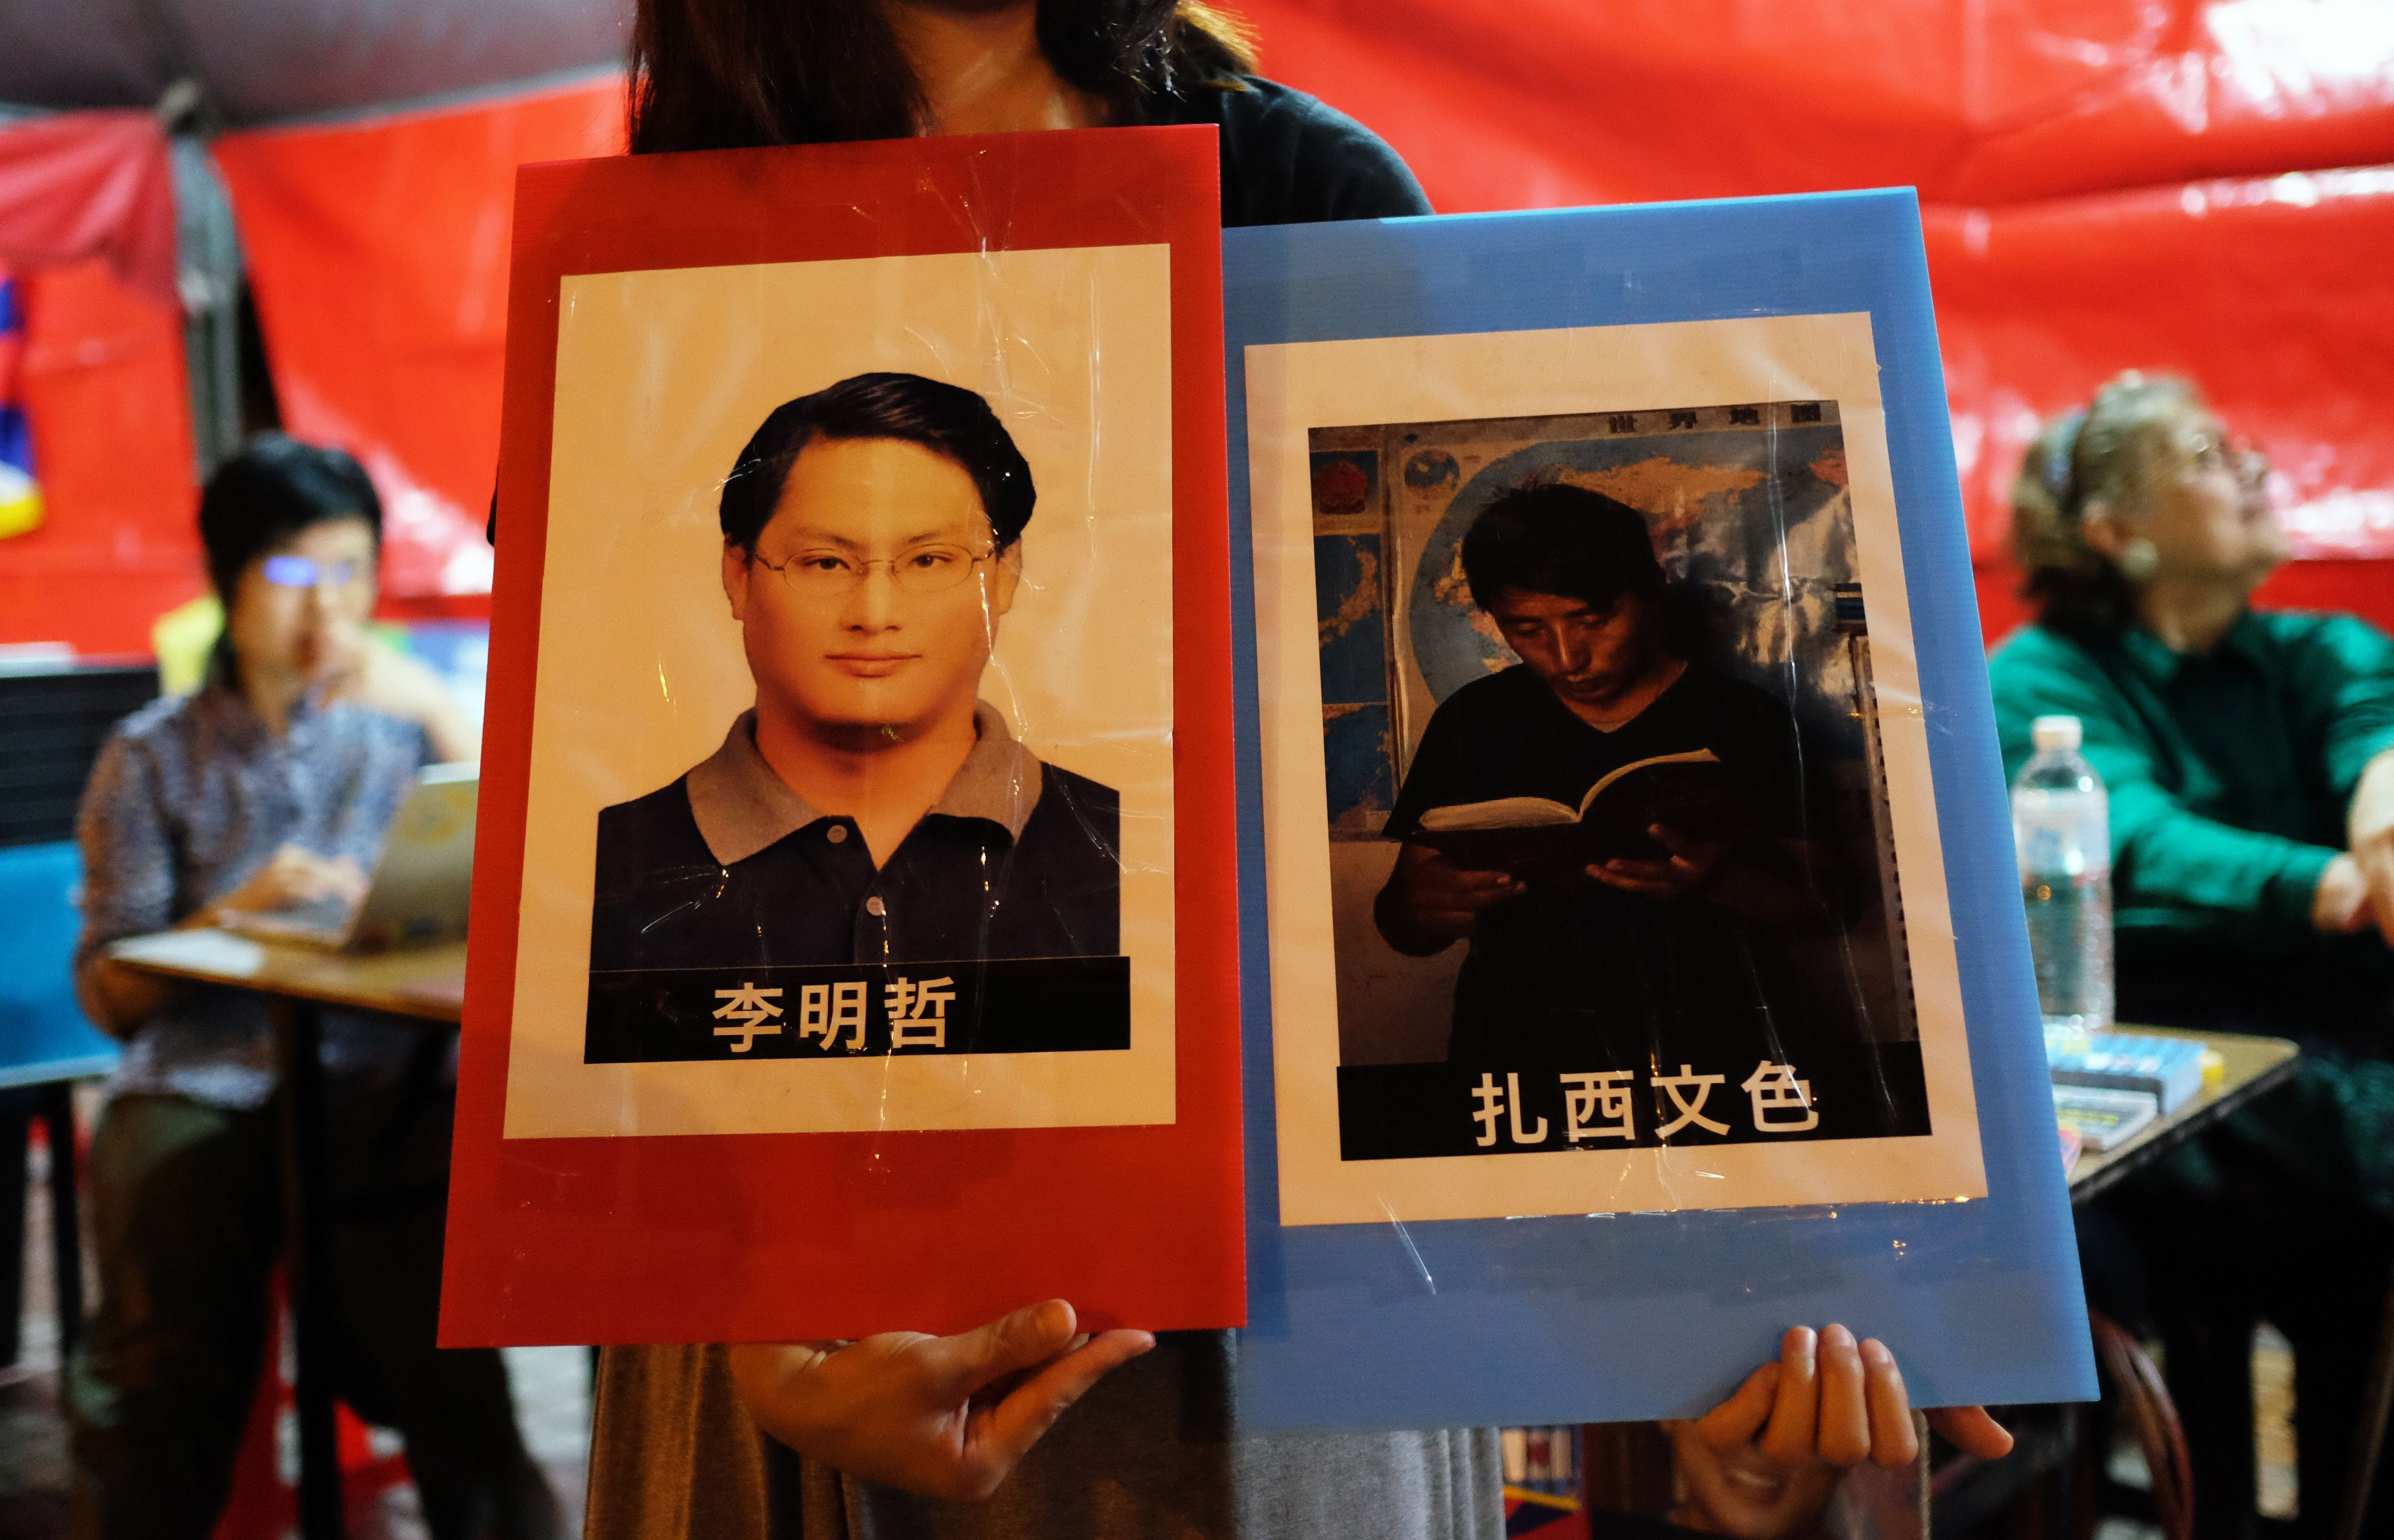 A volunteer holds placards of detained Tibetan activist Tashi Wangchuk and Taiwanese activist Lee Ming-cheh in Taipei, Taiwan on June 4, 2017.